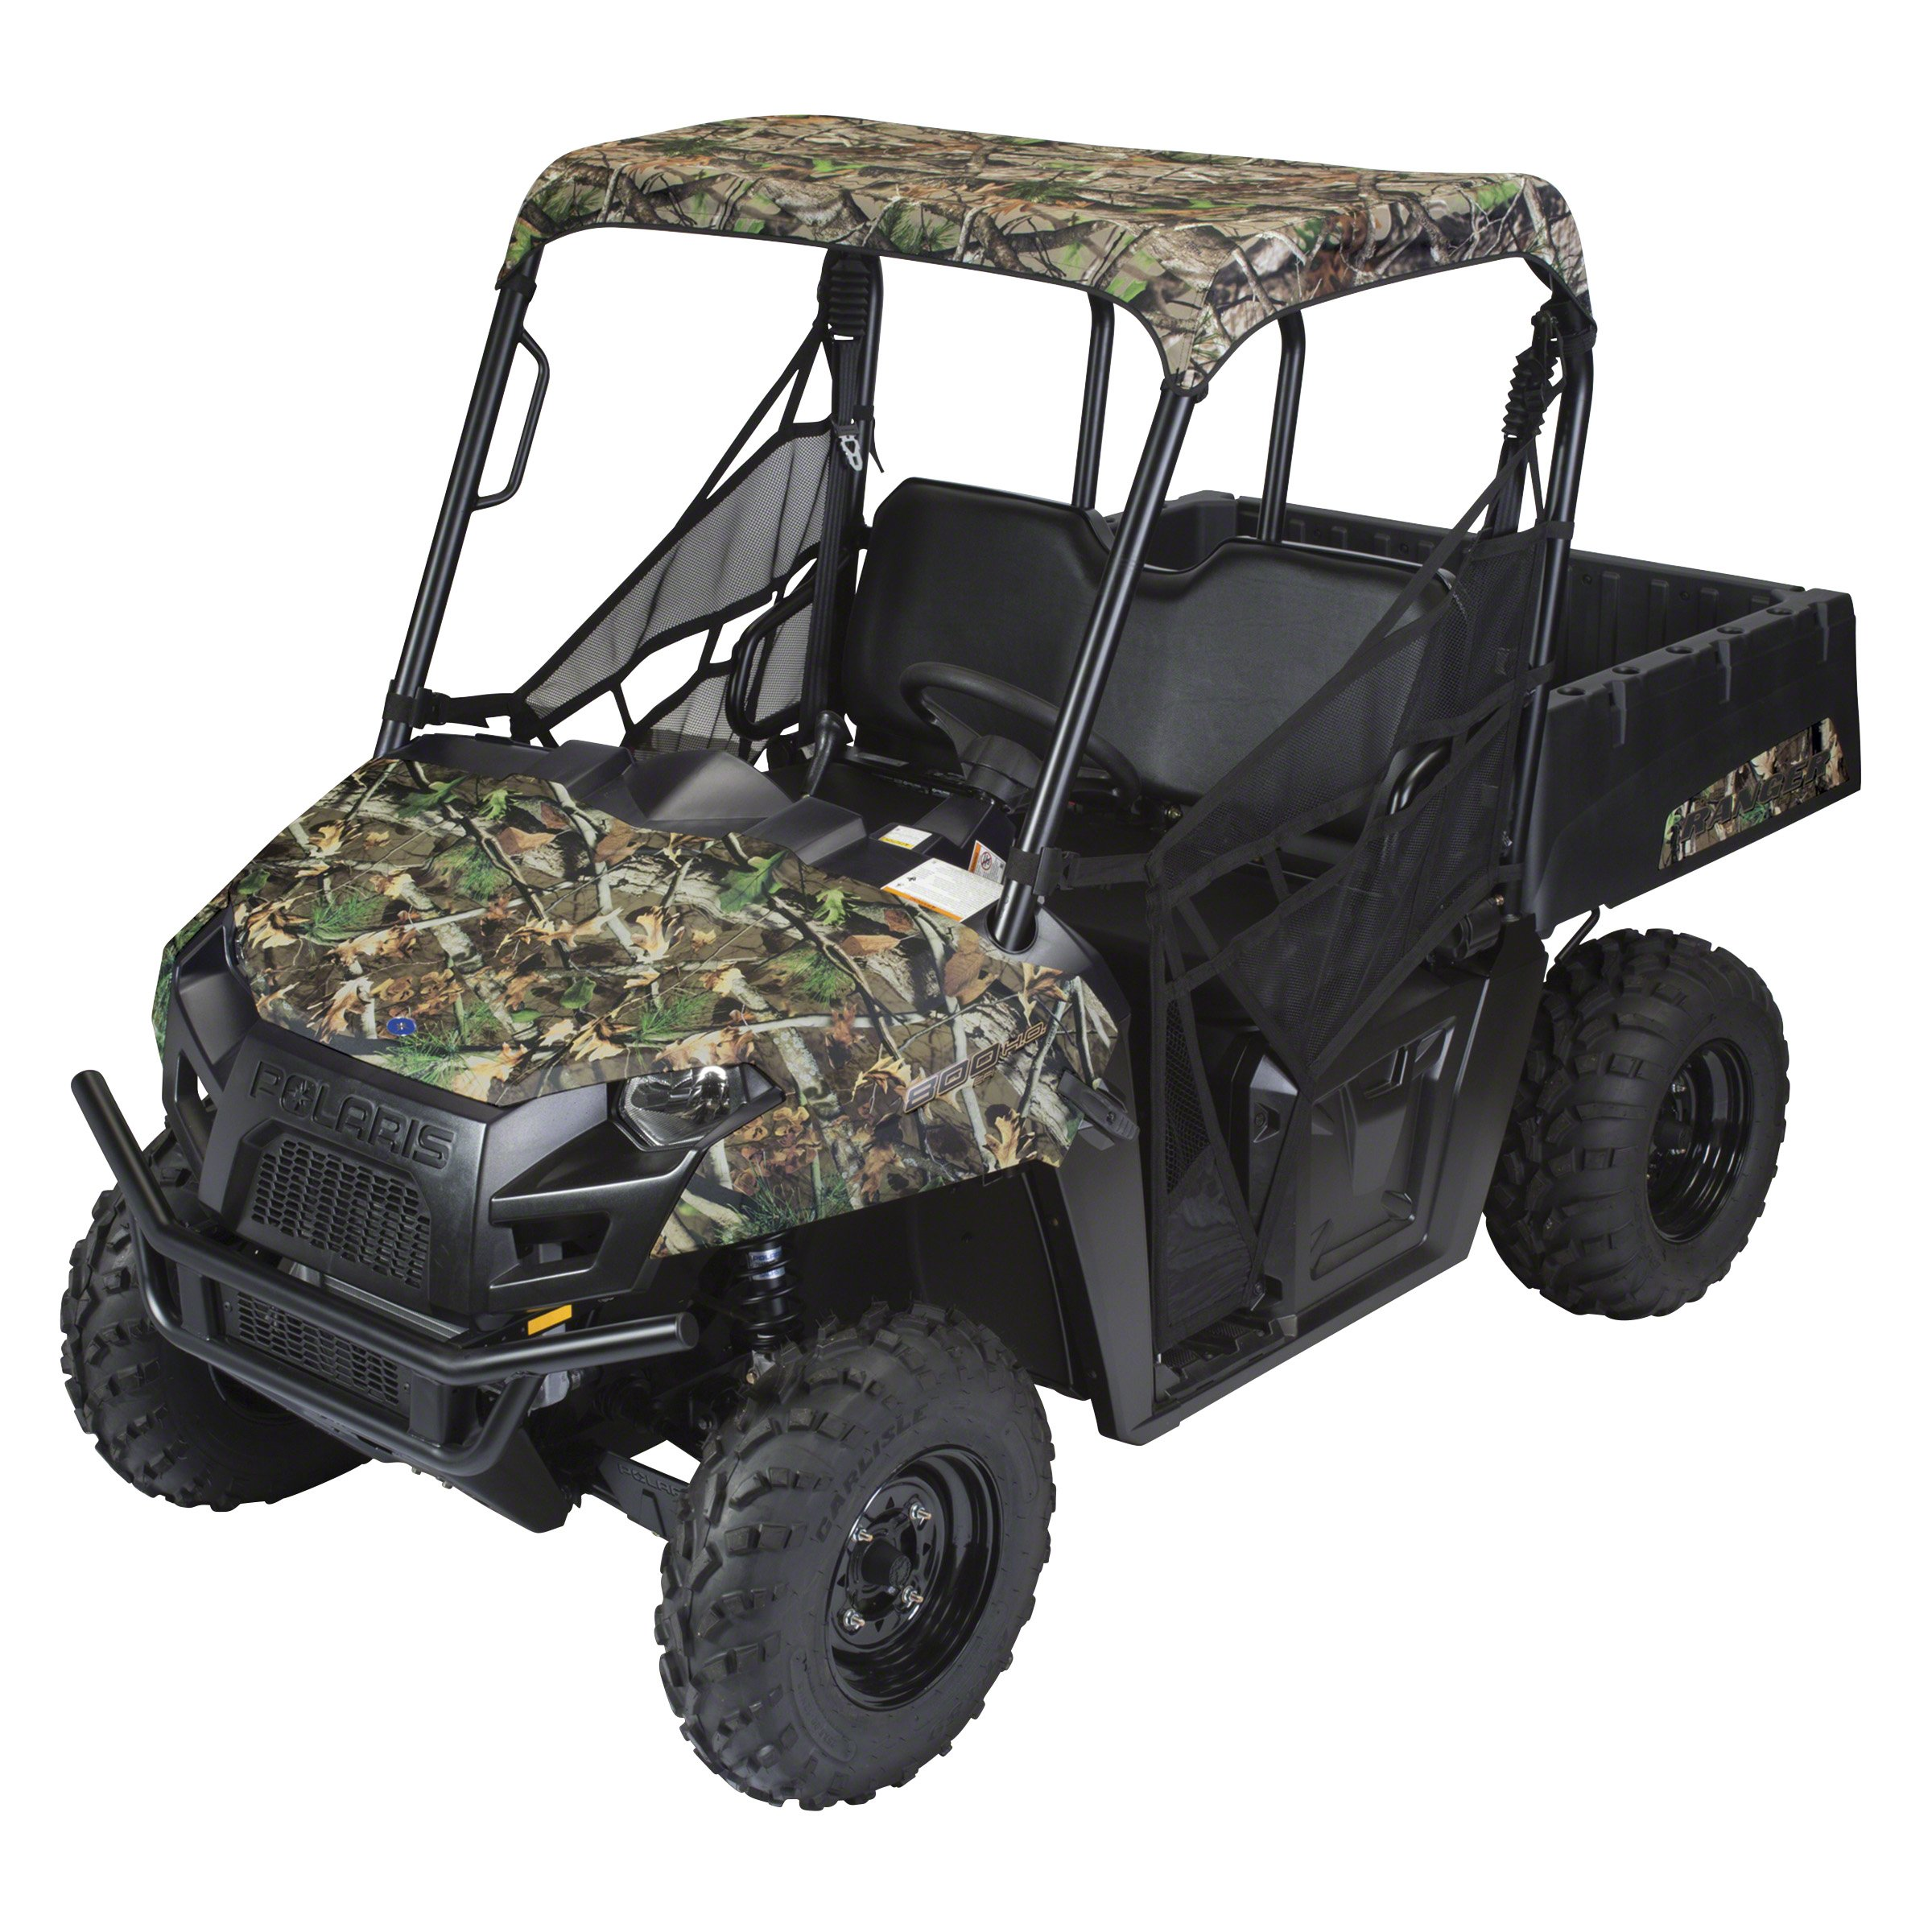 Classic Accessories 18-083-016001-00 Next Vista G1 Camo QuadGear UTV Roll Cage Top